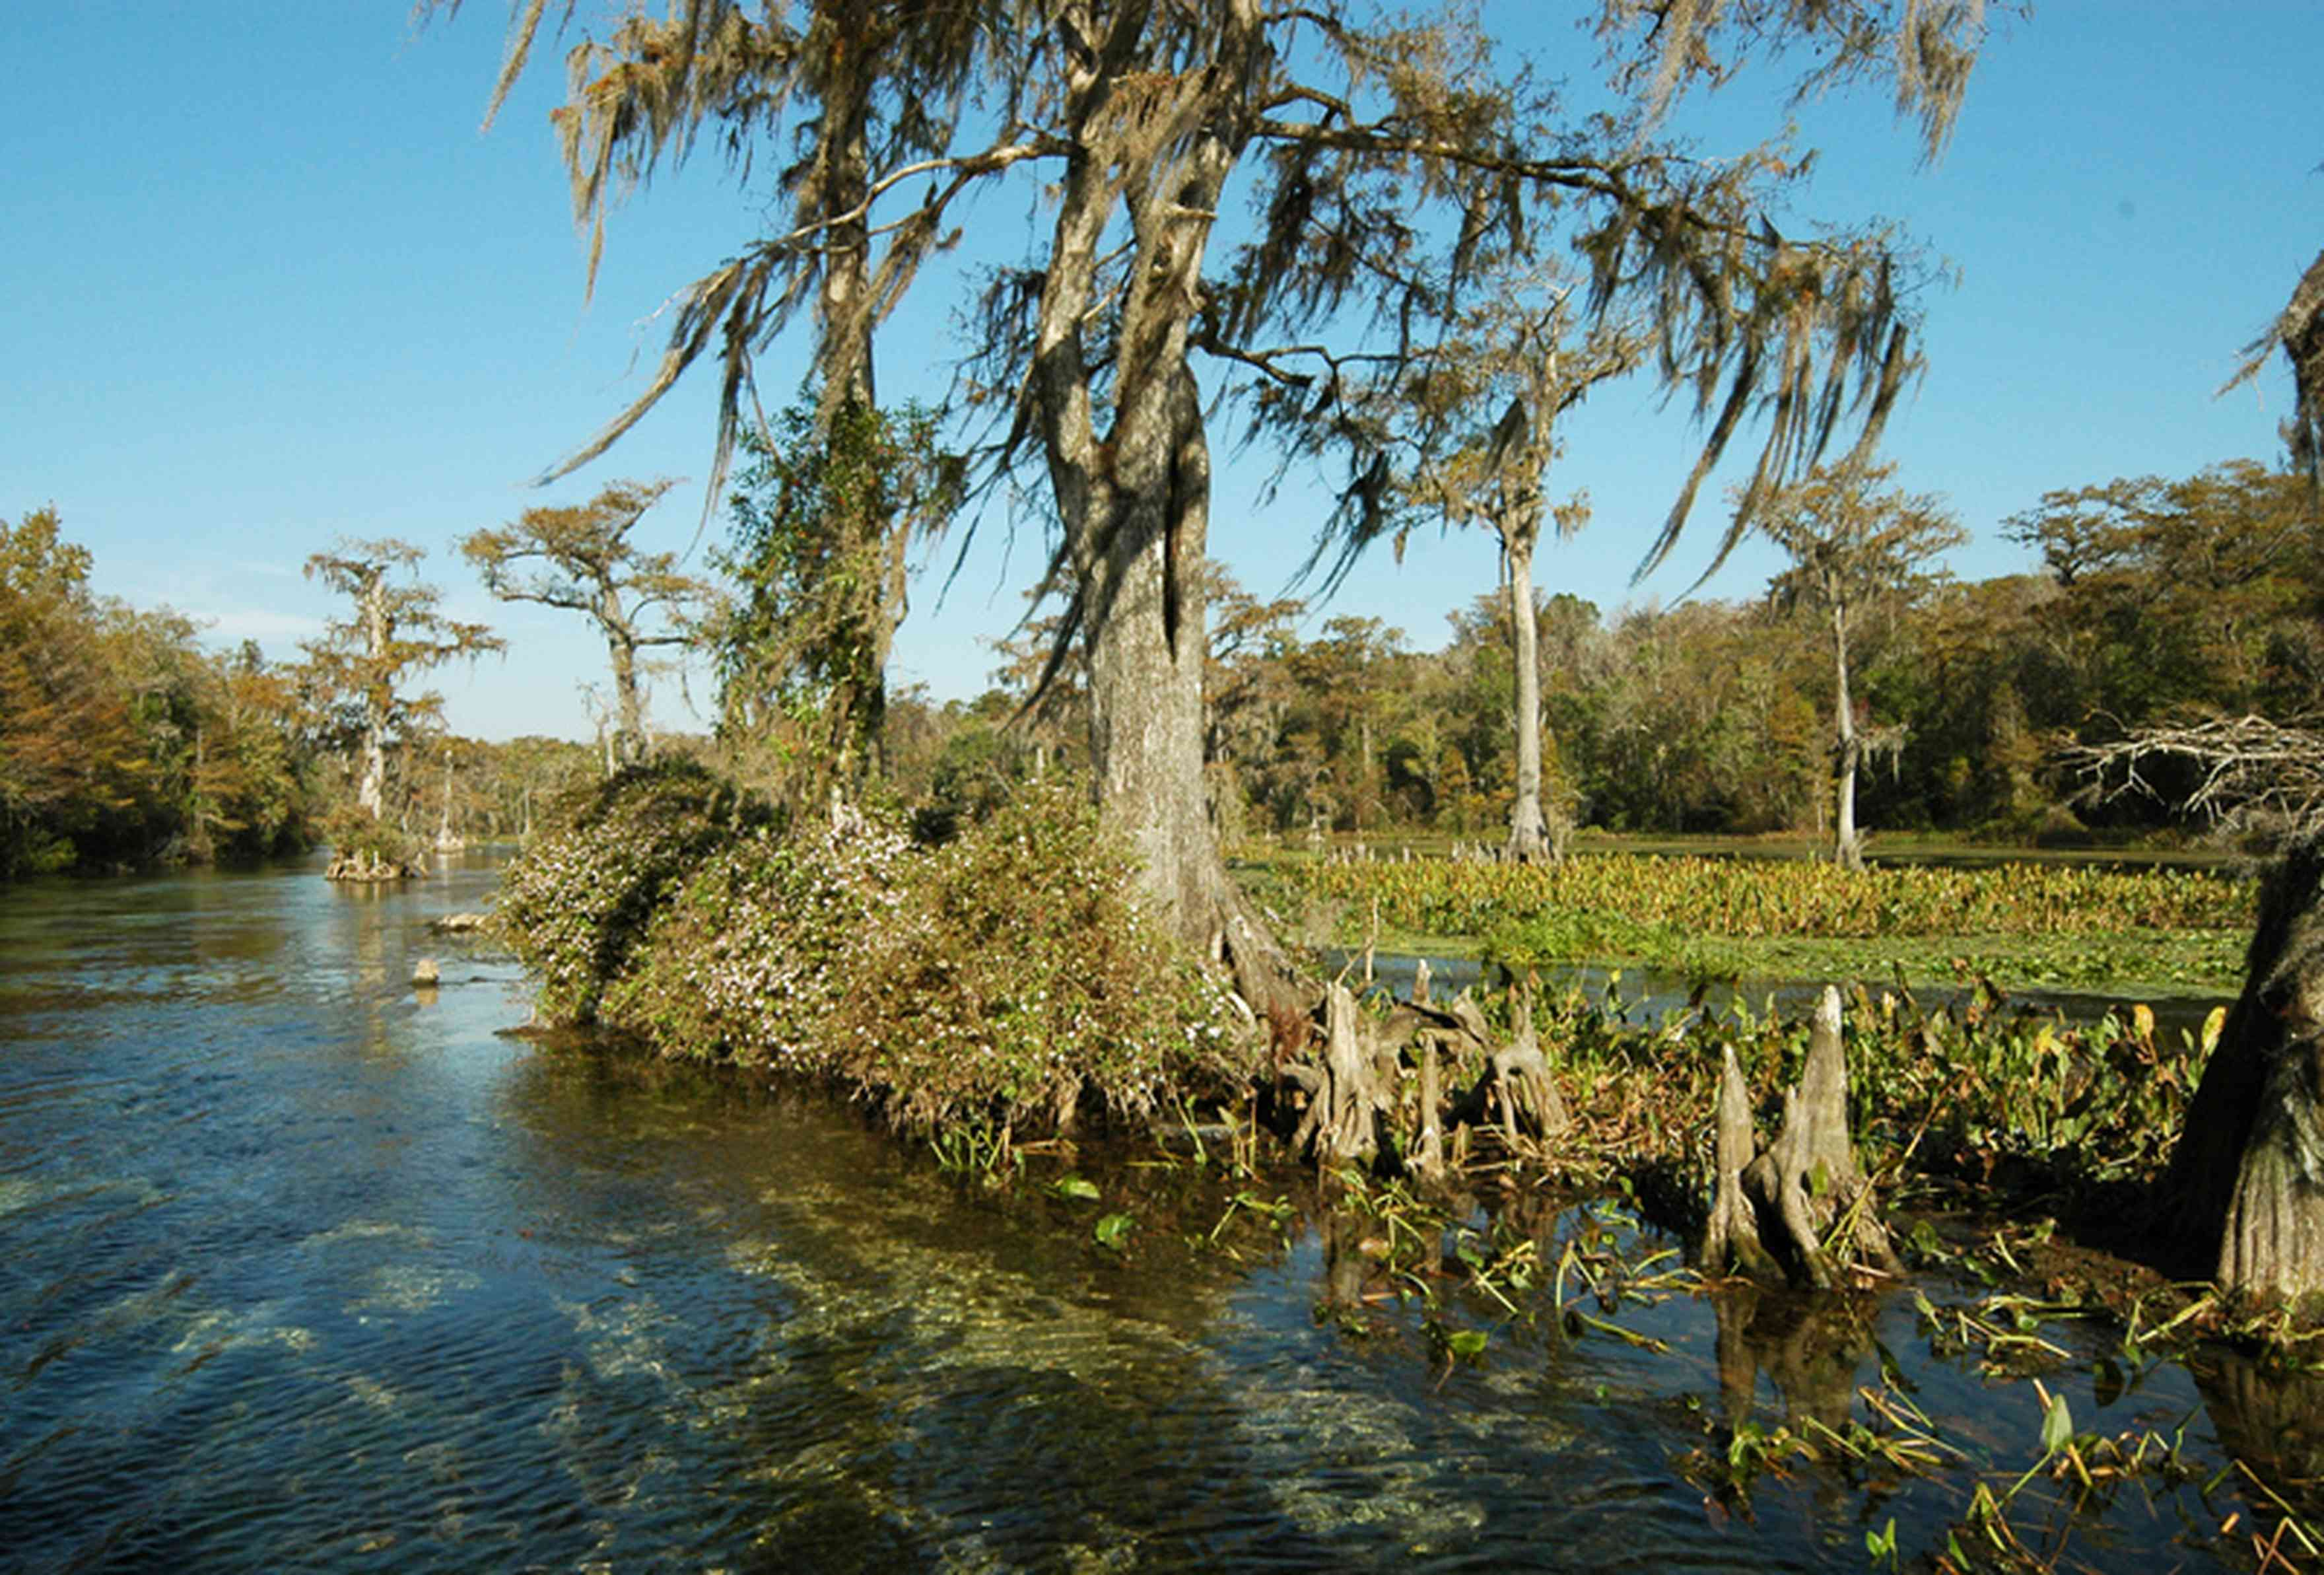 Perdido+River+Swamp_03.jpg:  cypress trees, cypress knees, spanish moss, river, marsh wetlands, forested wetlands, maritime forest ,